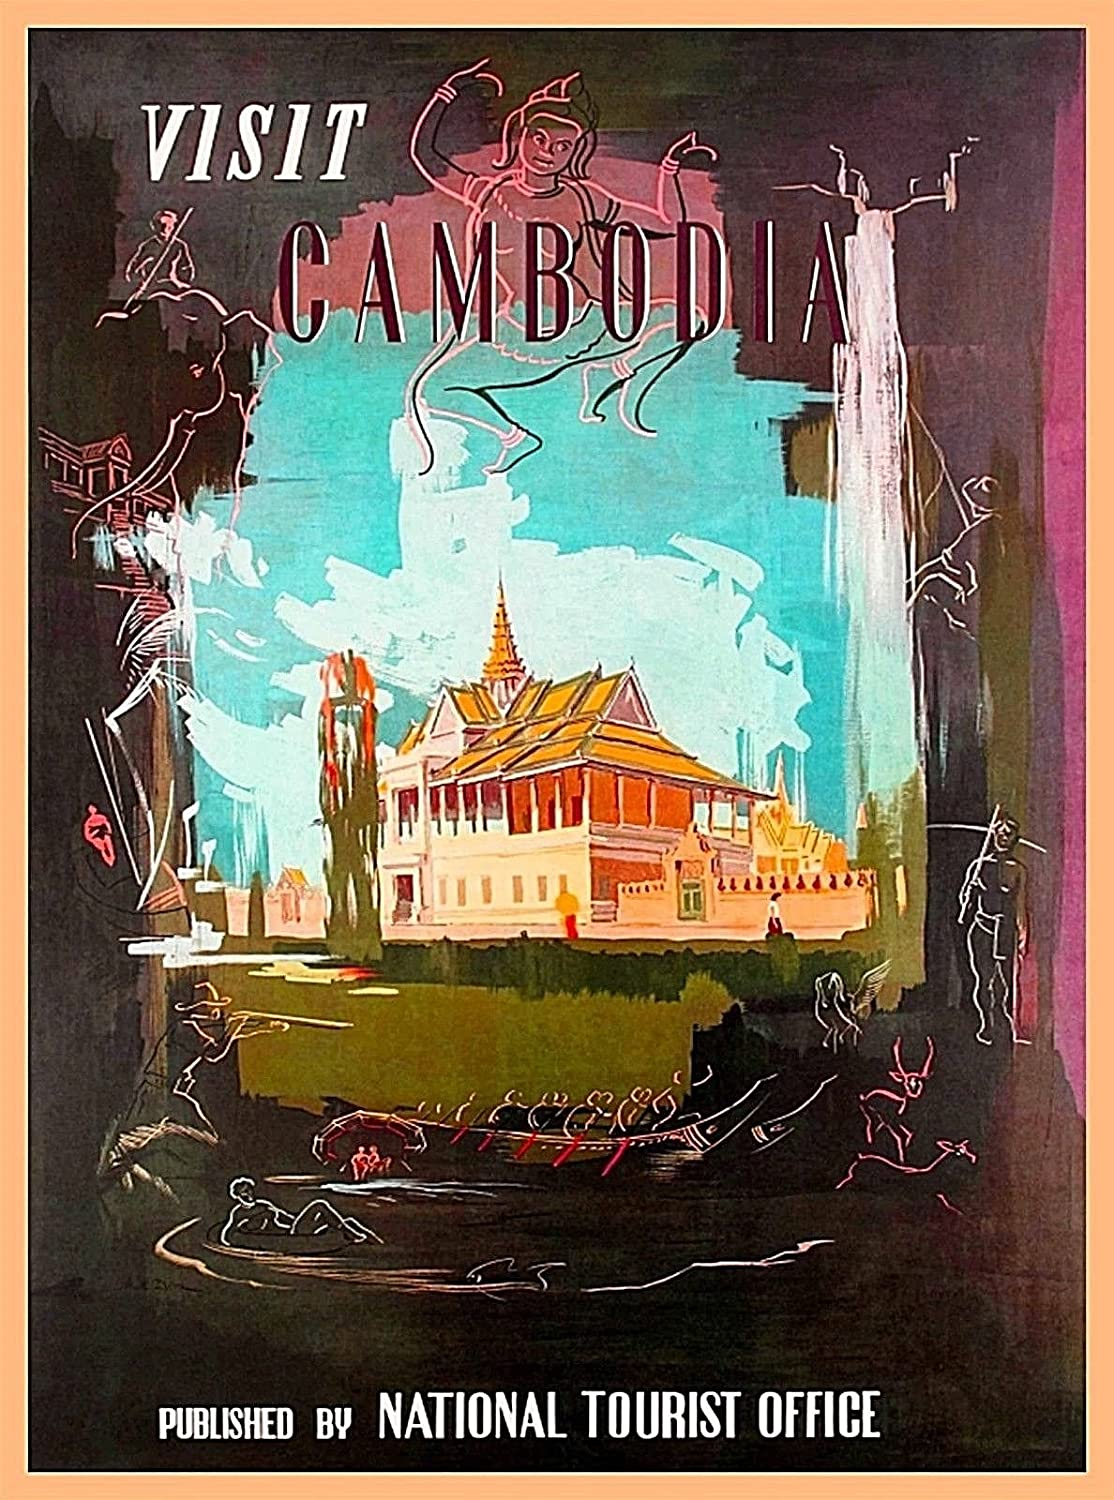 Amazon Com A Slice In Time Visit Cambodia Southeast Asia Asian National Tourist Office Vintage Travel Home Collectible Wall Decor Souvenir Advertisement Art Poster Print 10 X 13 5 Inches Posters Prints